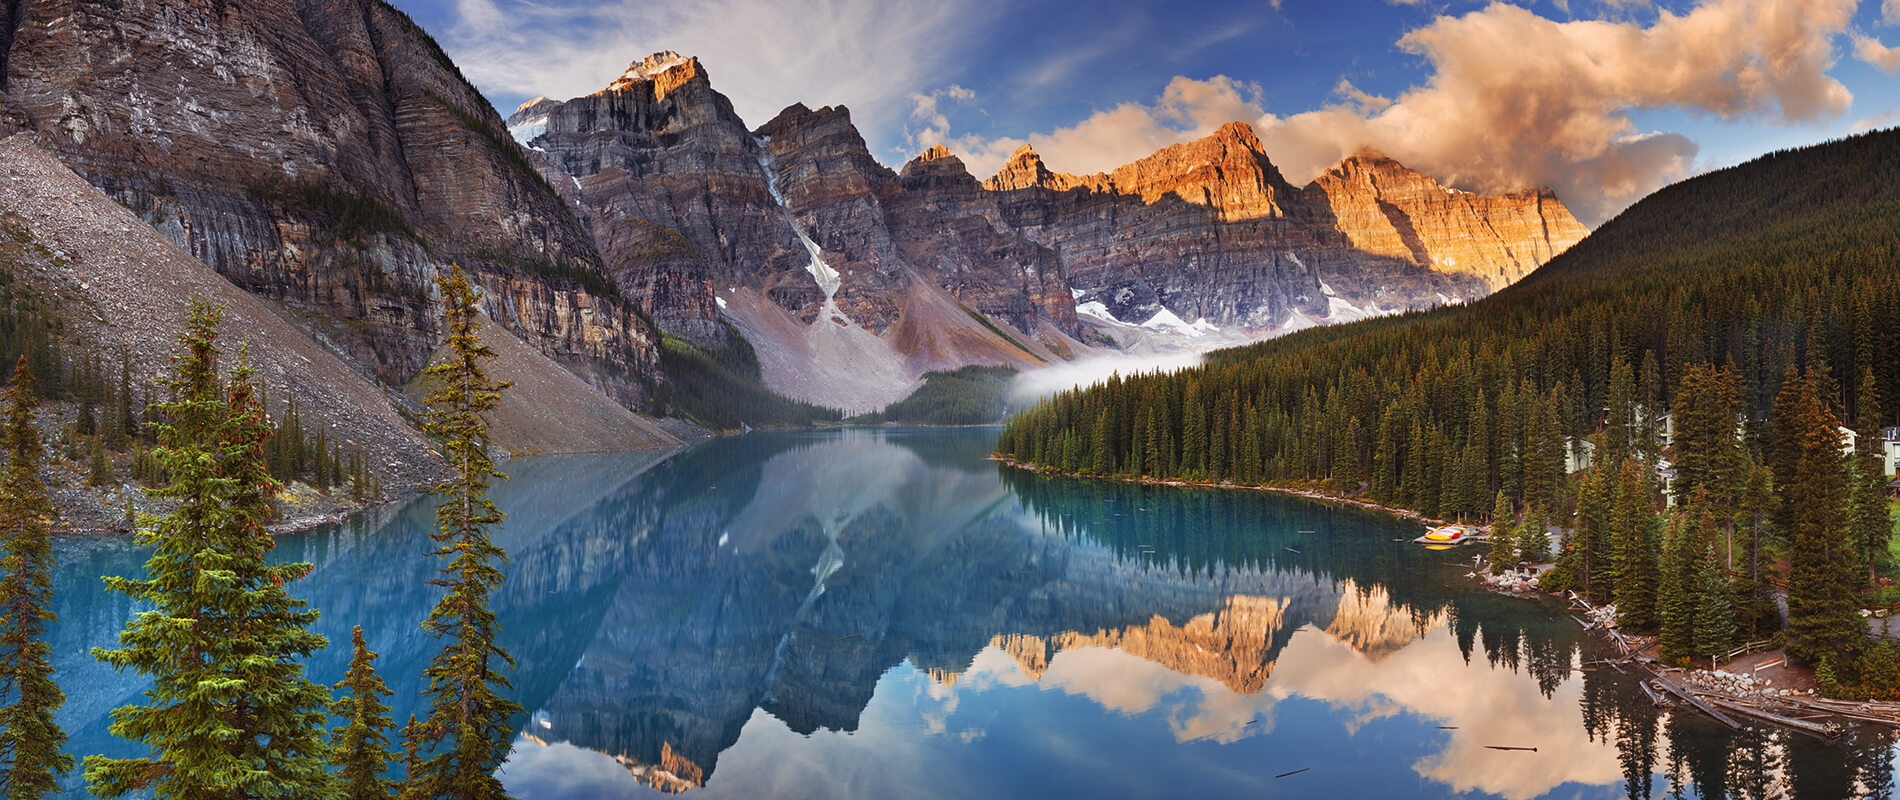 Moraine Lake, a Hidden Jewel hidden in the Canadian Rockies